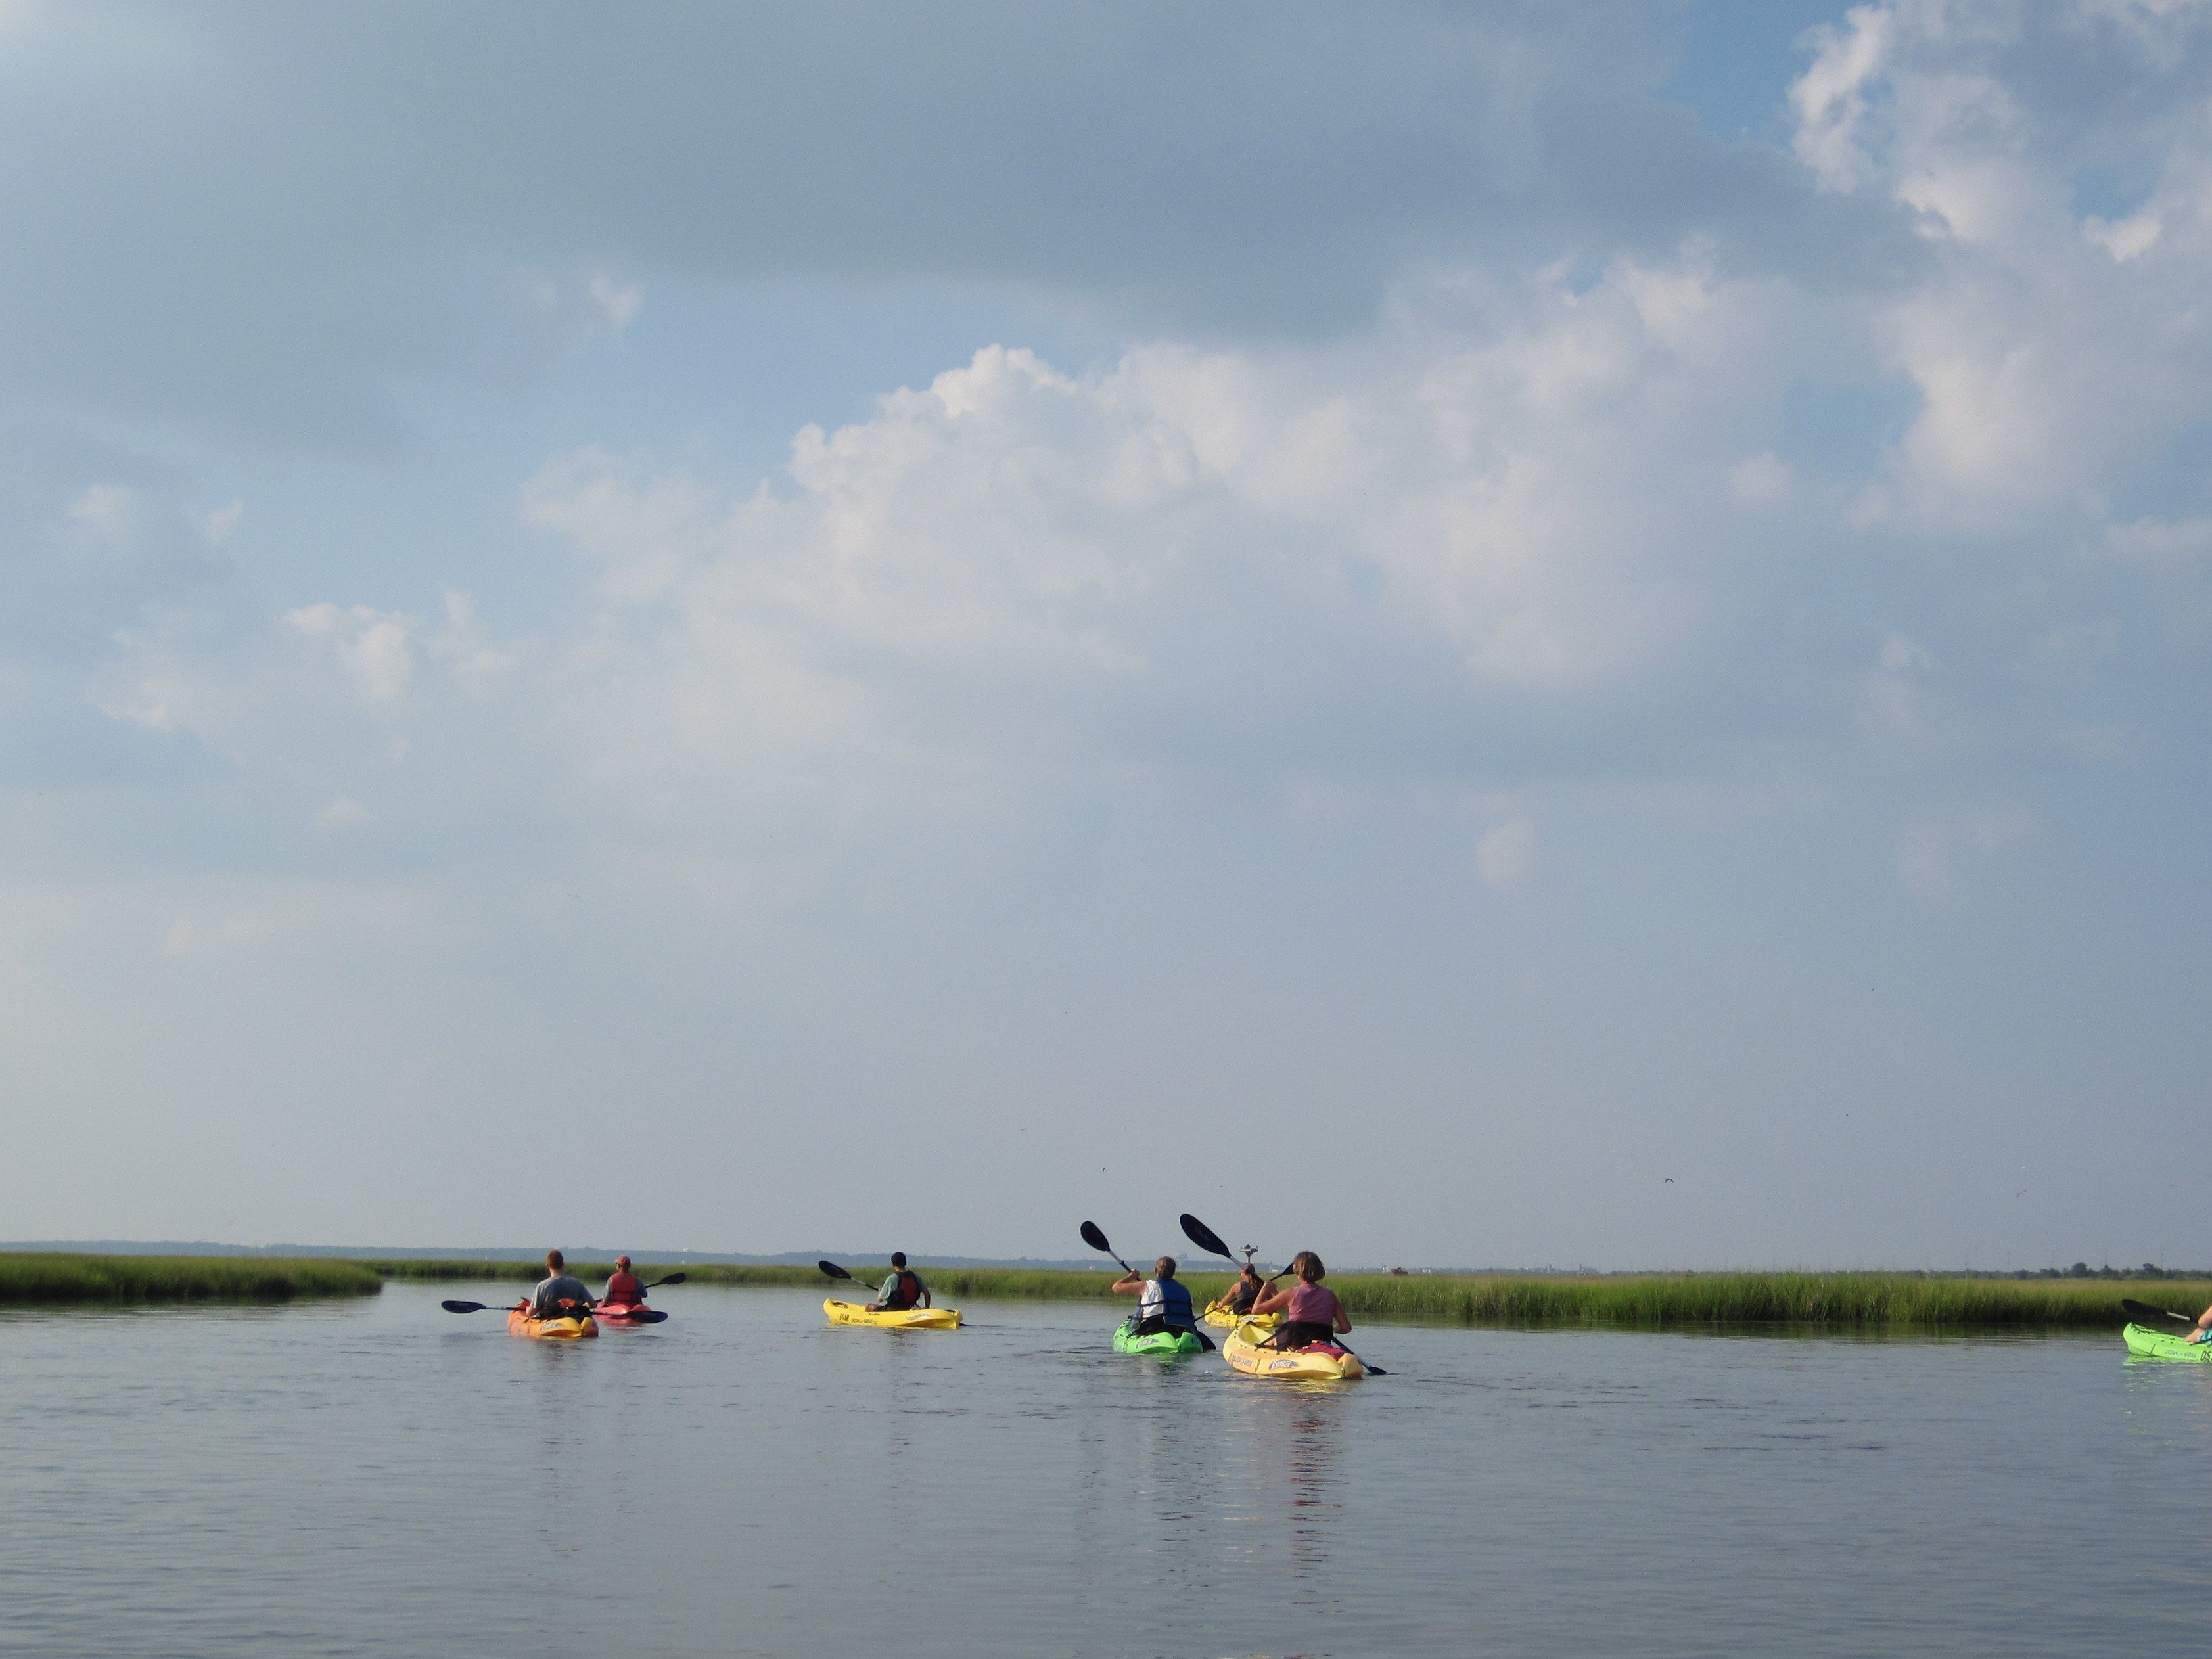 Delaware Seas State Park Continues 50th Anniversary Celebrations With Paddlefest Dewey Beach De The Staff Of Are